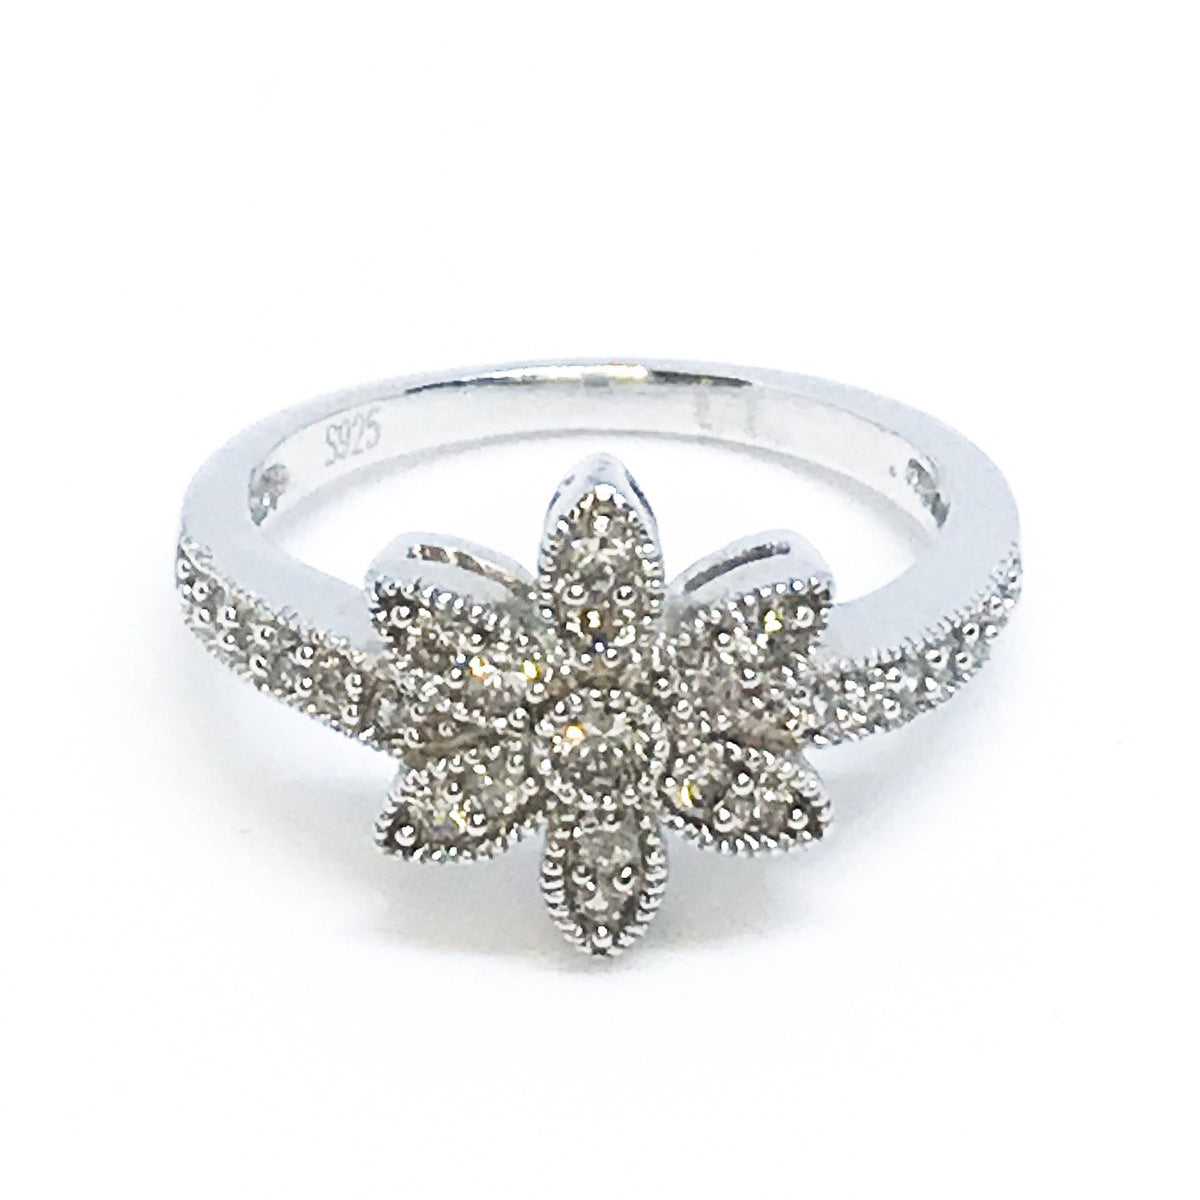 NEW 14K White Gold on Sterling Silver Floral Ring with Stones